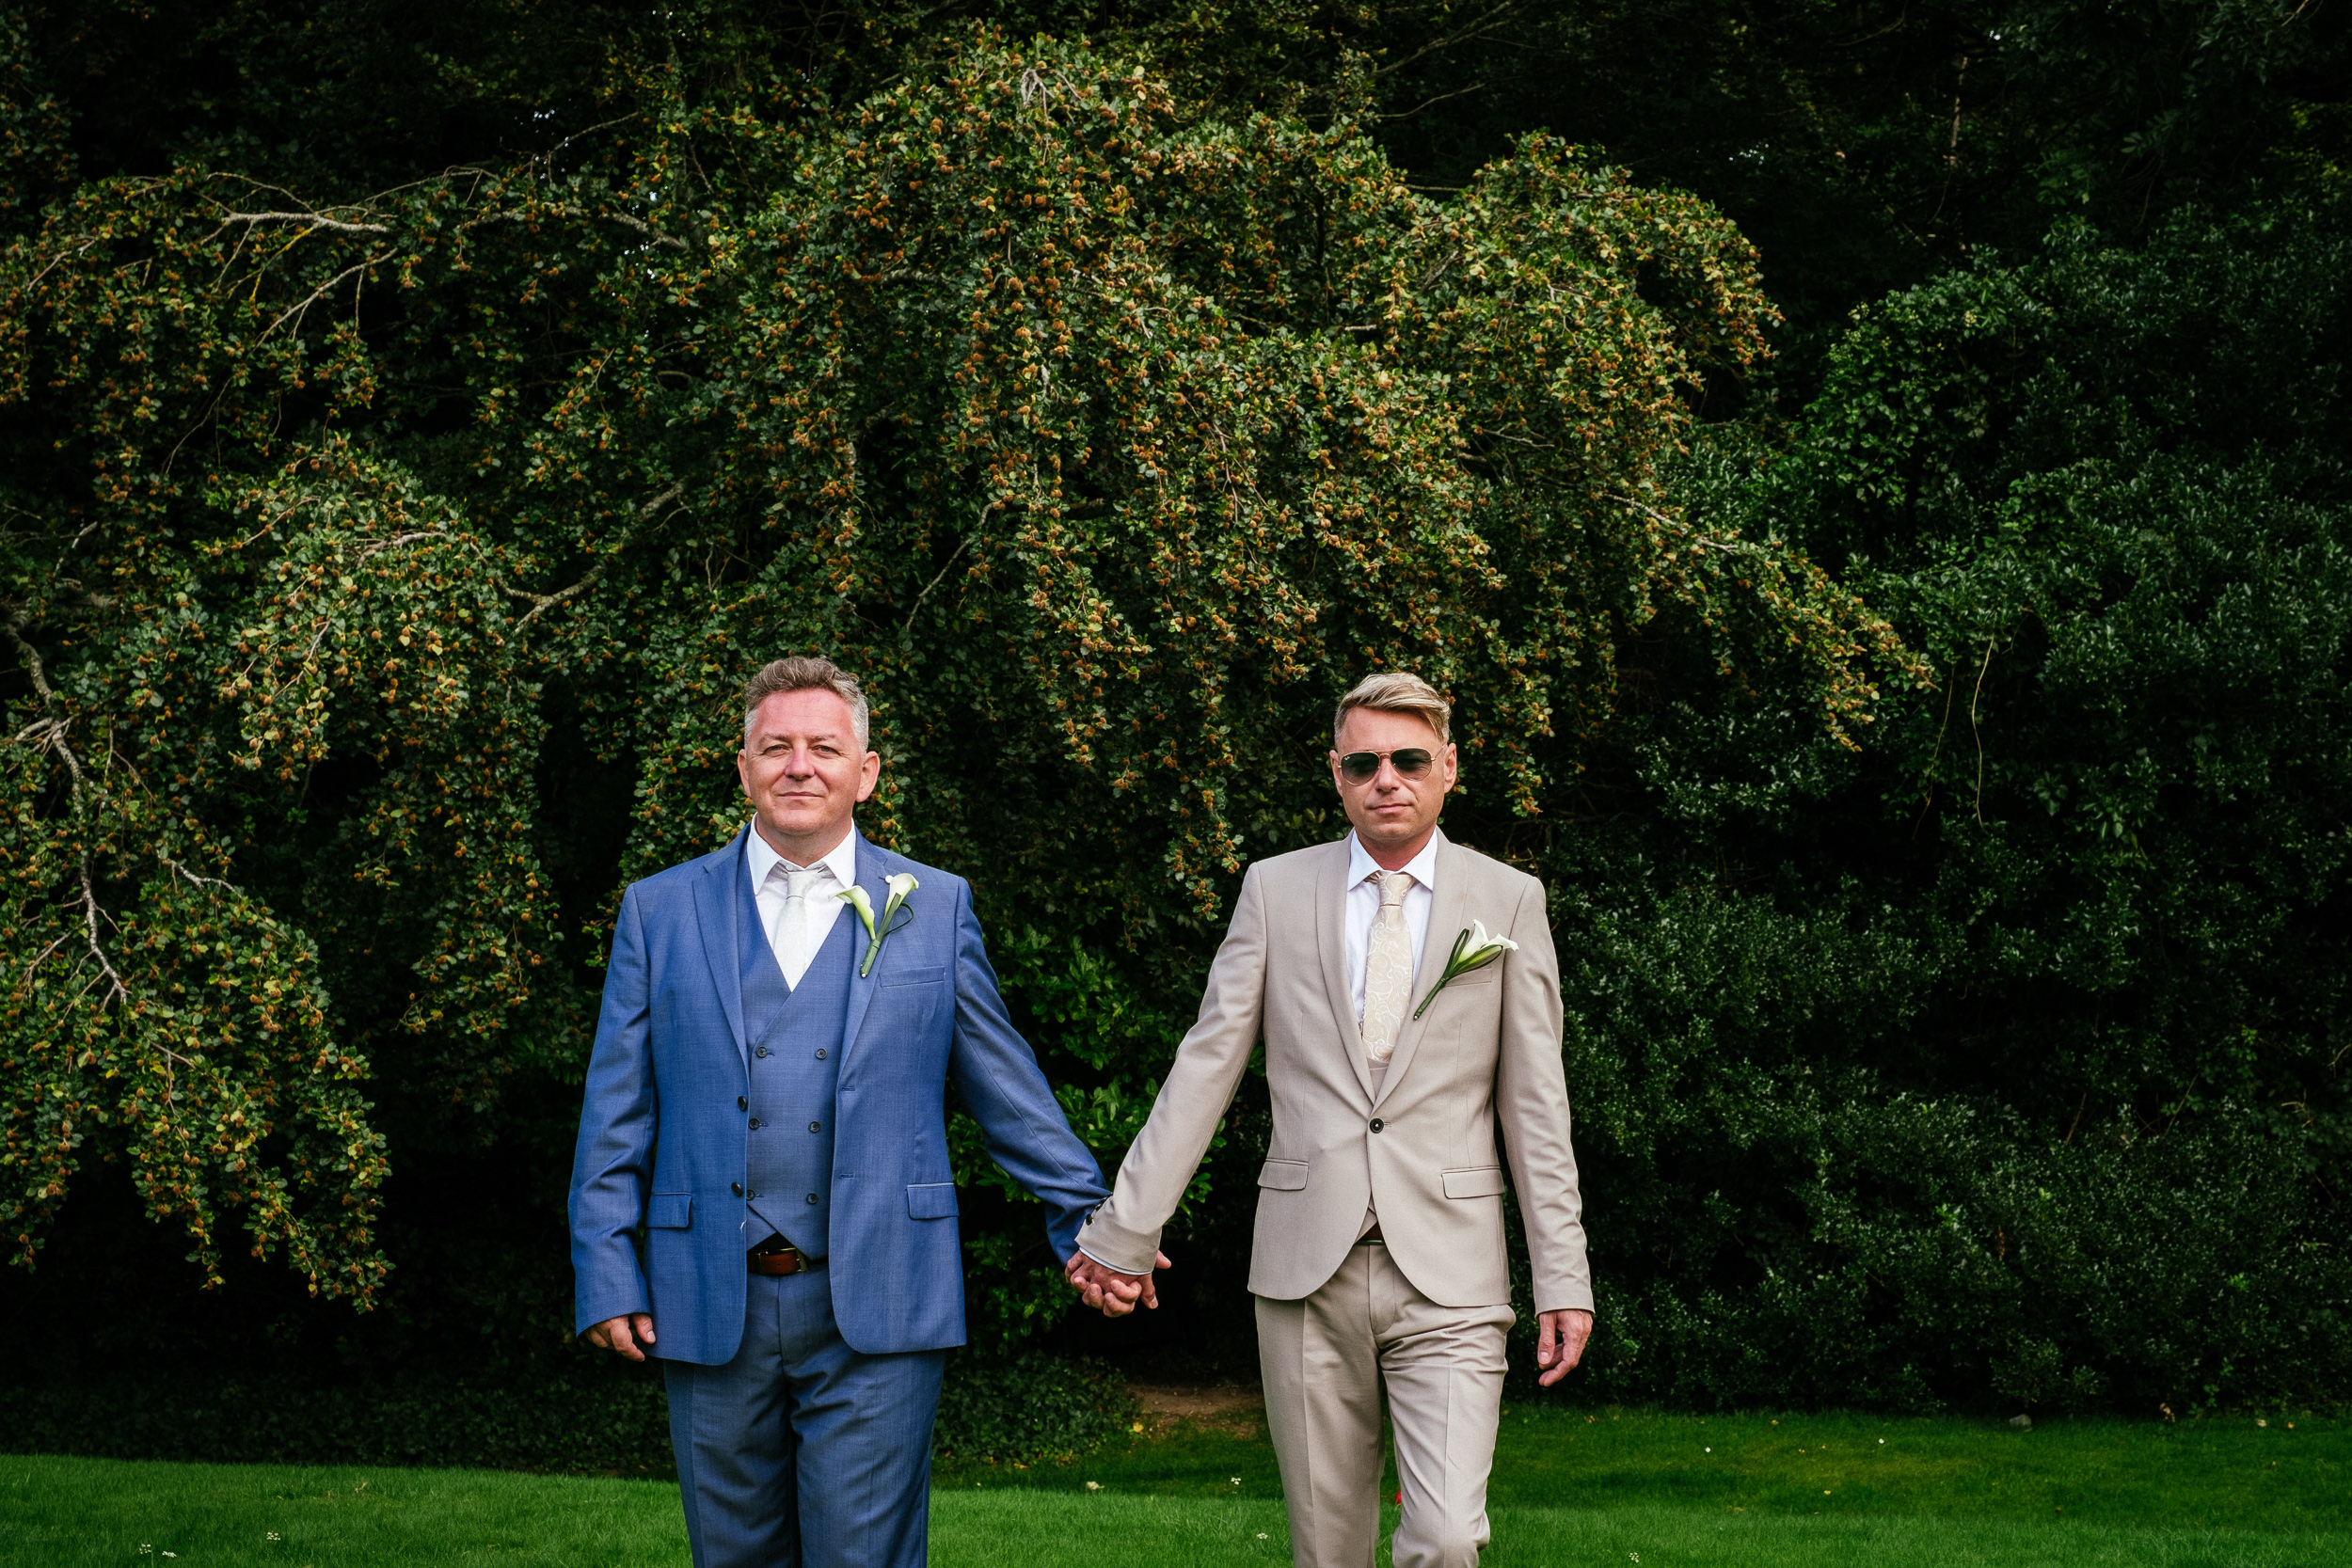 2 gay grooms looking at camera holding hands